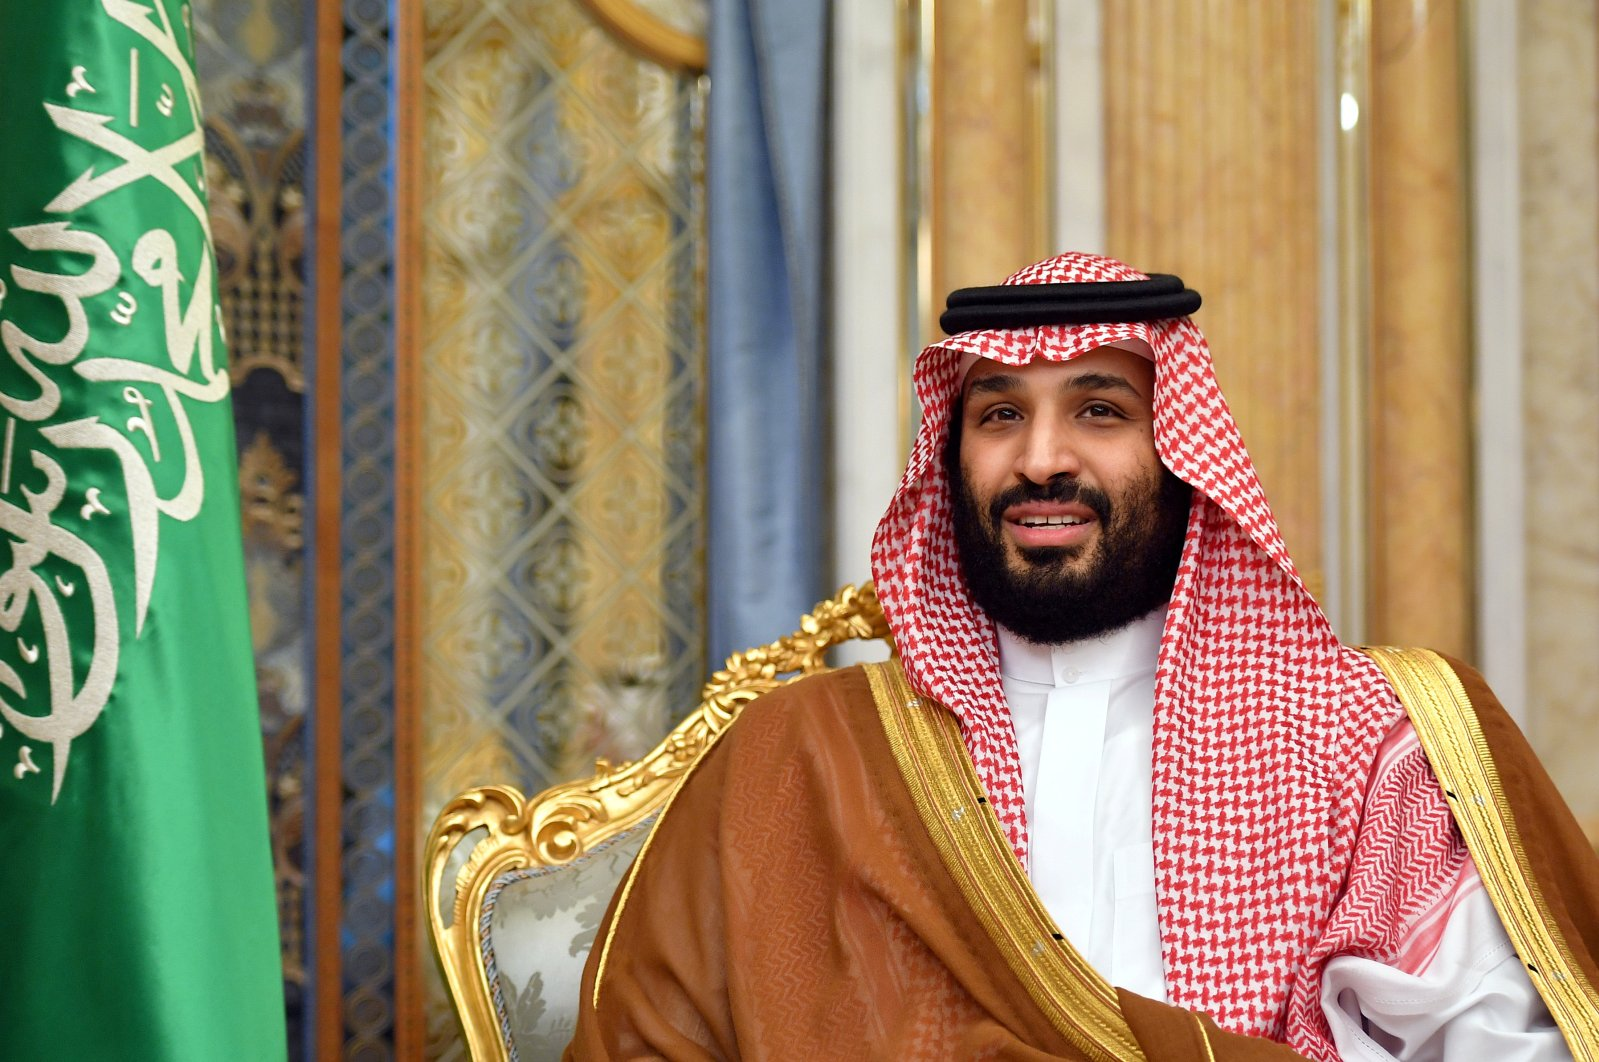 Saudi Arabia's Crown Prince Mohammed bin Salman attends a meeting with U.S. Secretary of State Mike Pompeo, Jeddah, Saudi Arabia, Sept. 18, 2019. (Reuters Photo)